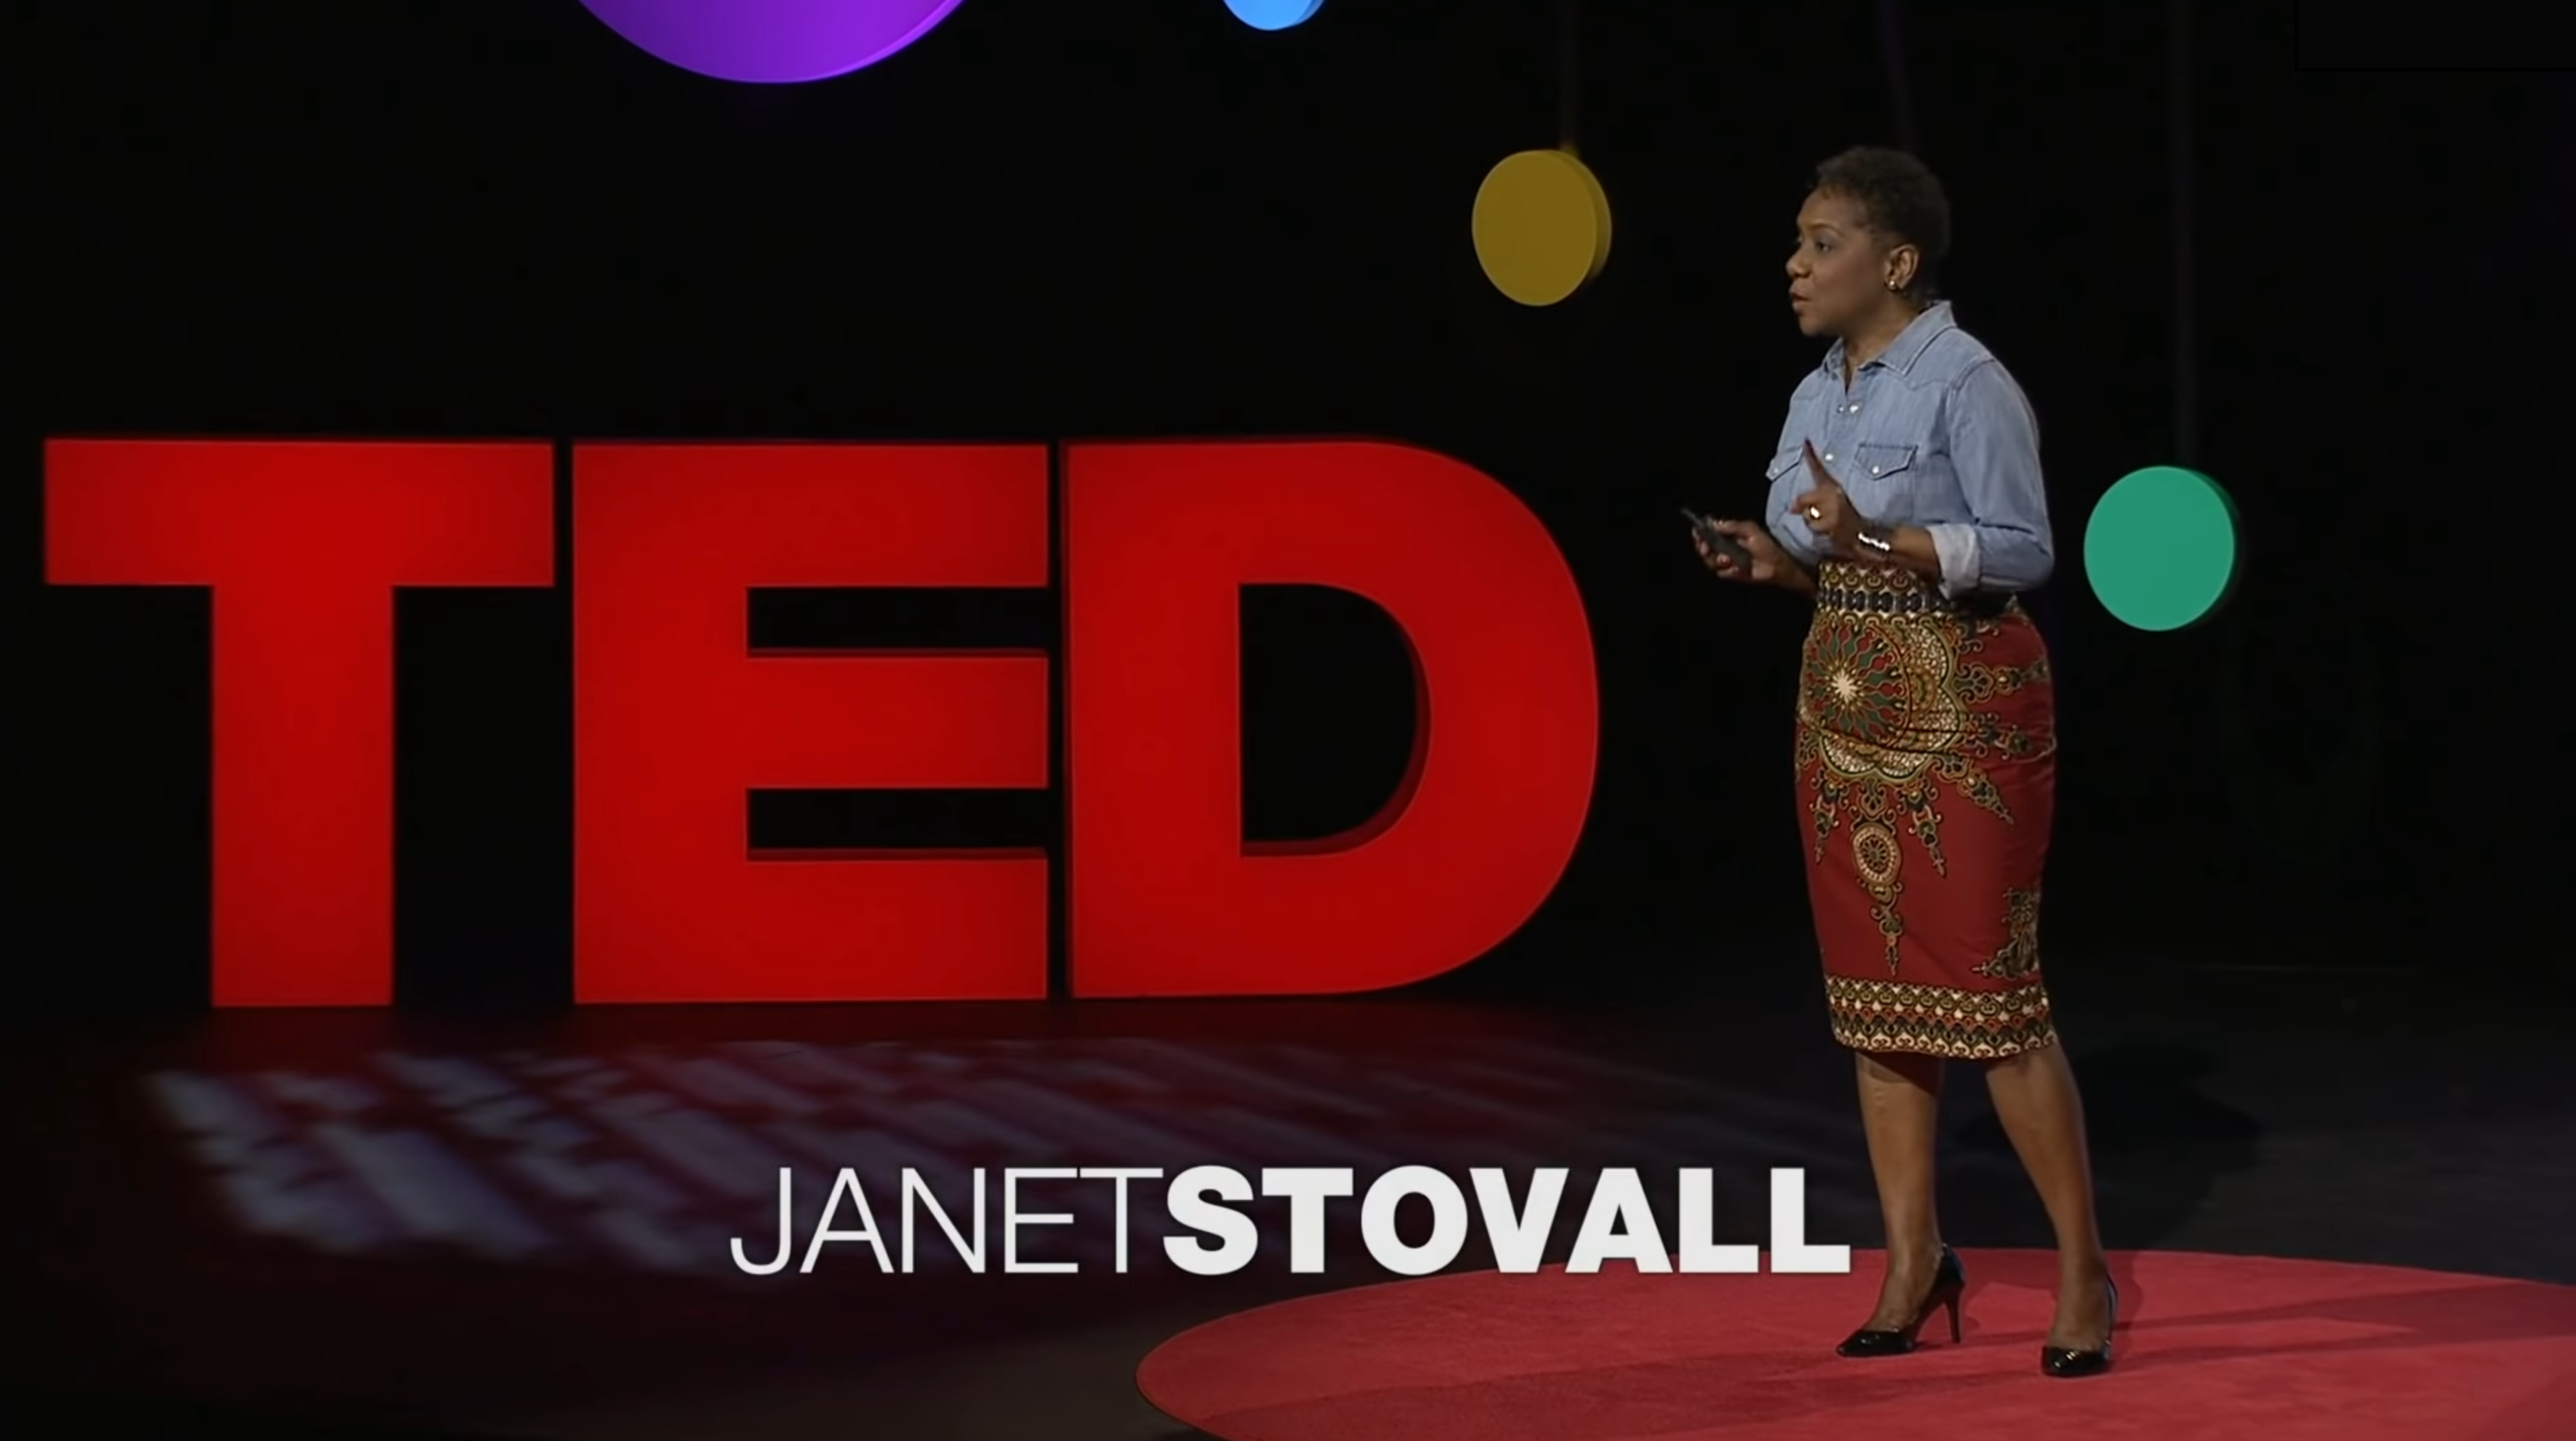 how to get serious about diversity and inclusion in the workplace   janet stovall How to get serious about diversity and inclusion in the workplace   Janet Stovall diversity and inclusion in the workplace Janet Stovall capa